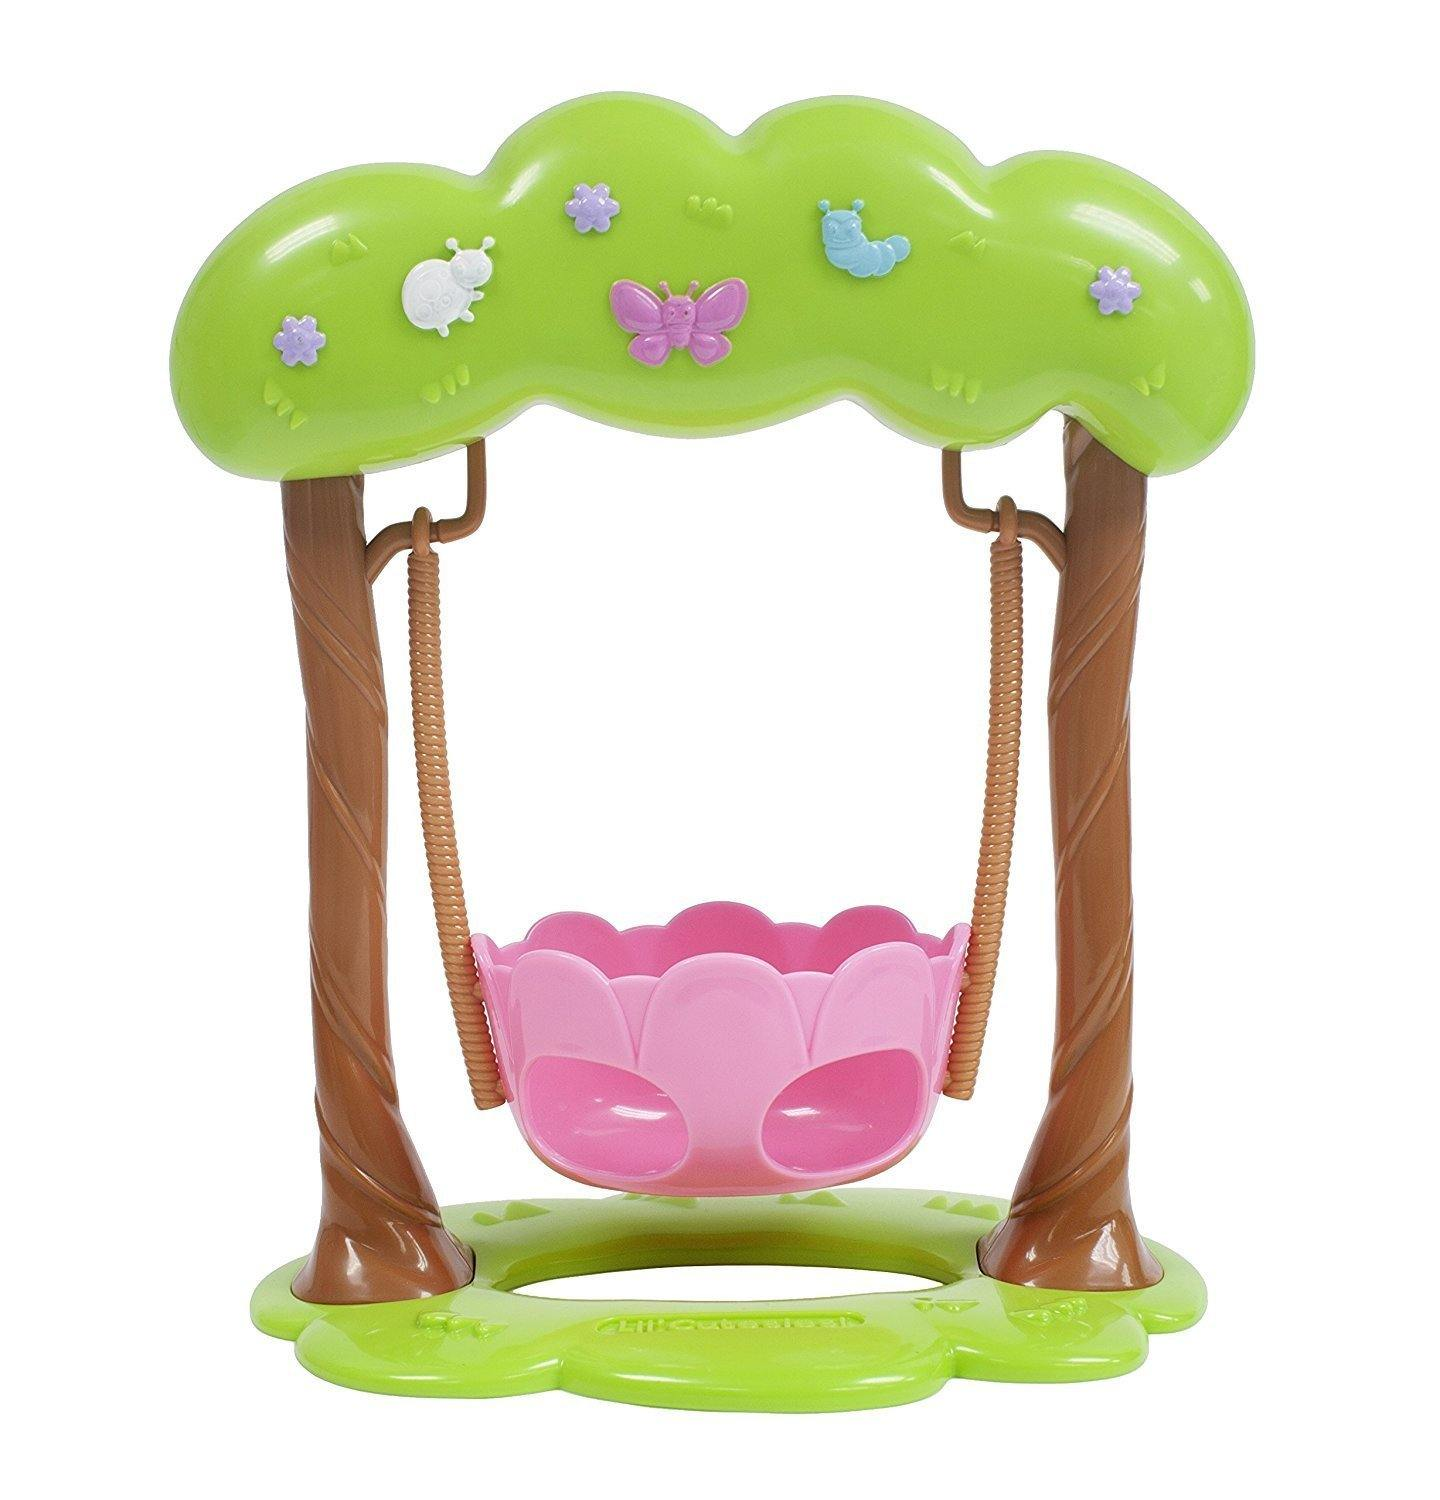 For Keeps! Lil' Cutesies Adorable Swing Fits Most Dolls Up to 11""